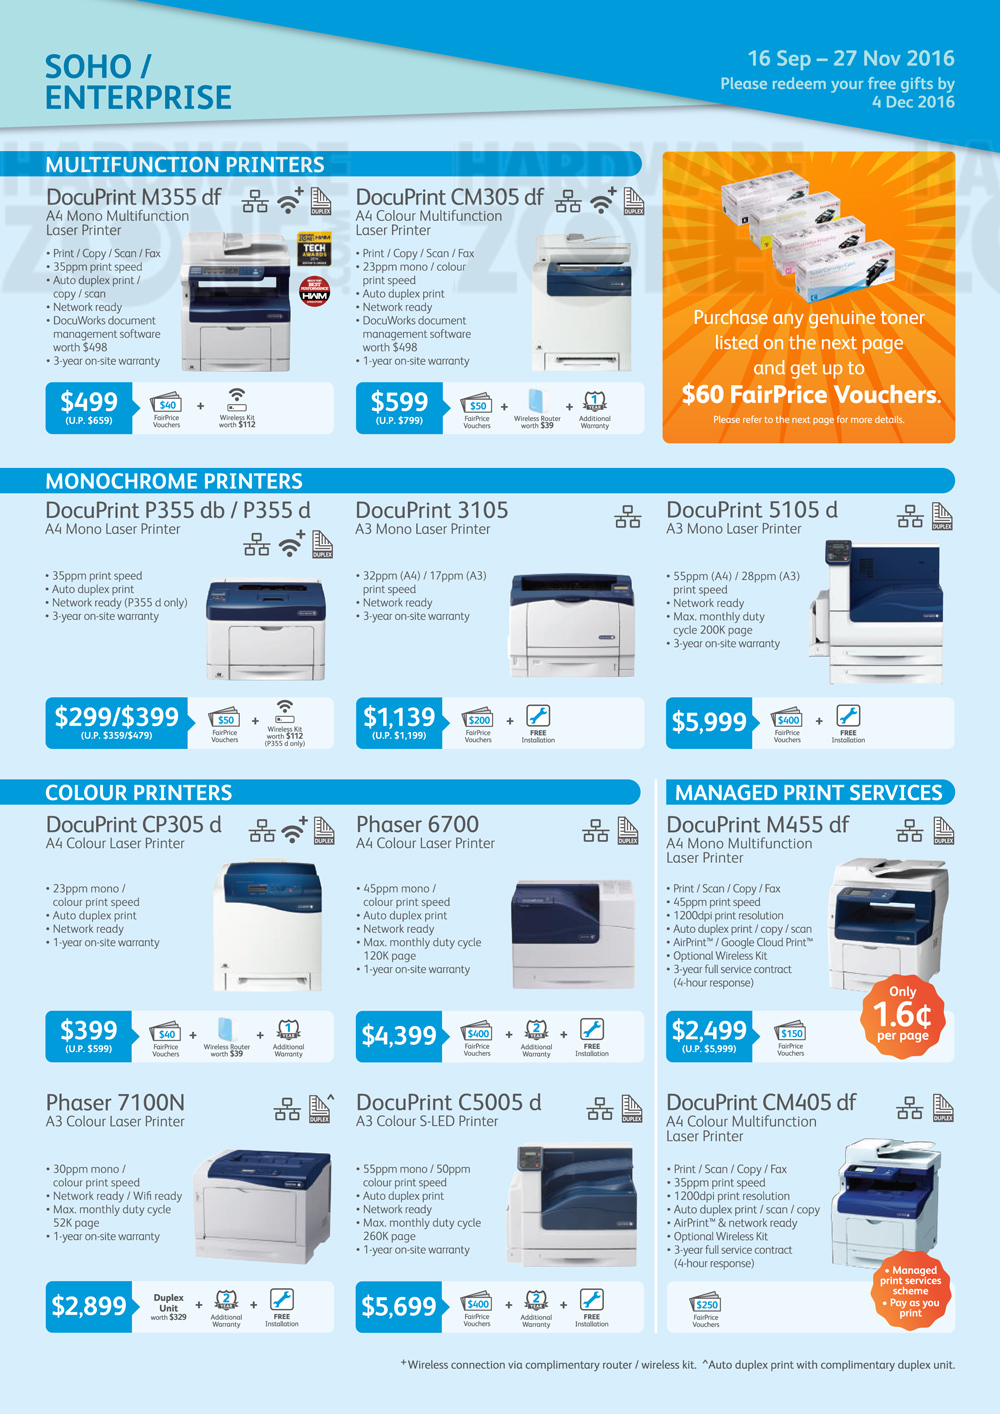 fuji xerox   pg 3 brochures from sitex 2016 singapore on